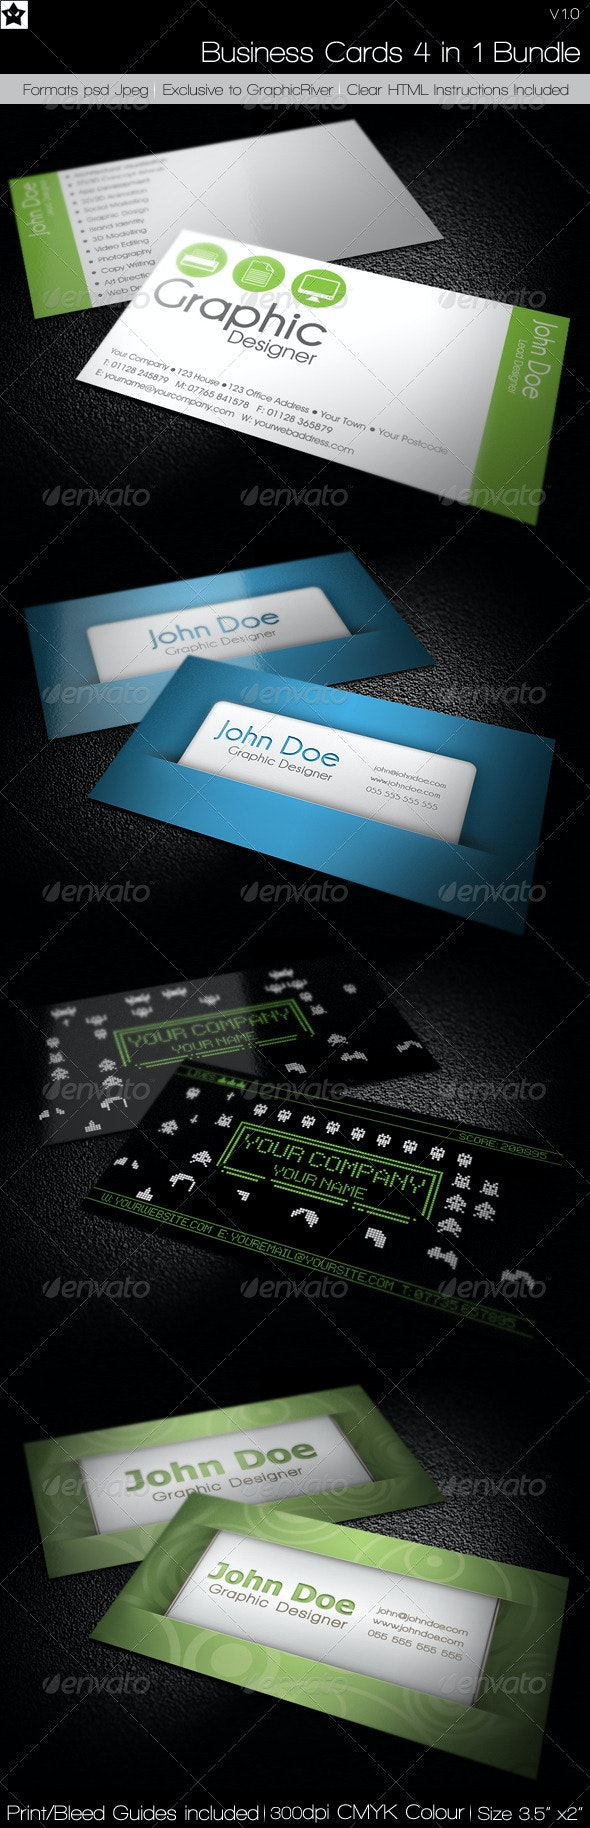 Business cards 4 in 1 Bundle - Corporate Business Cards